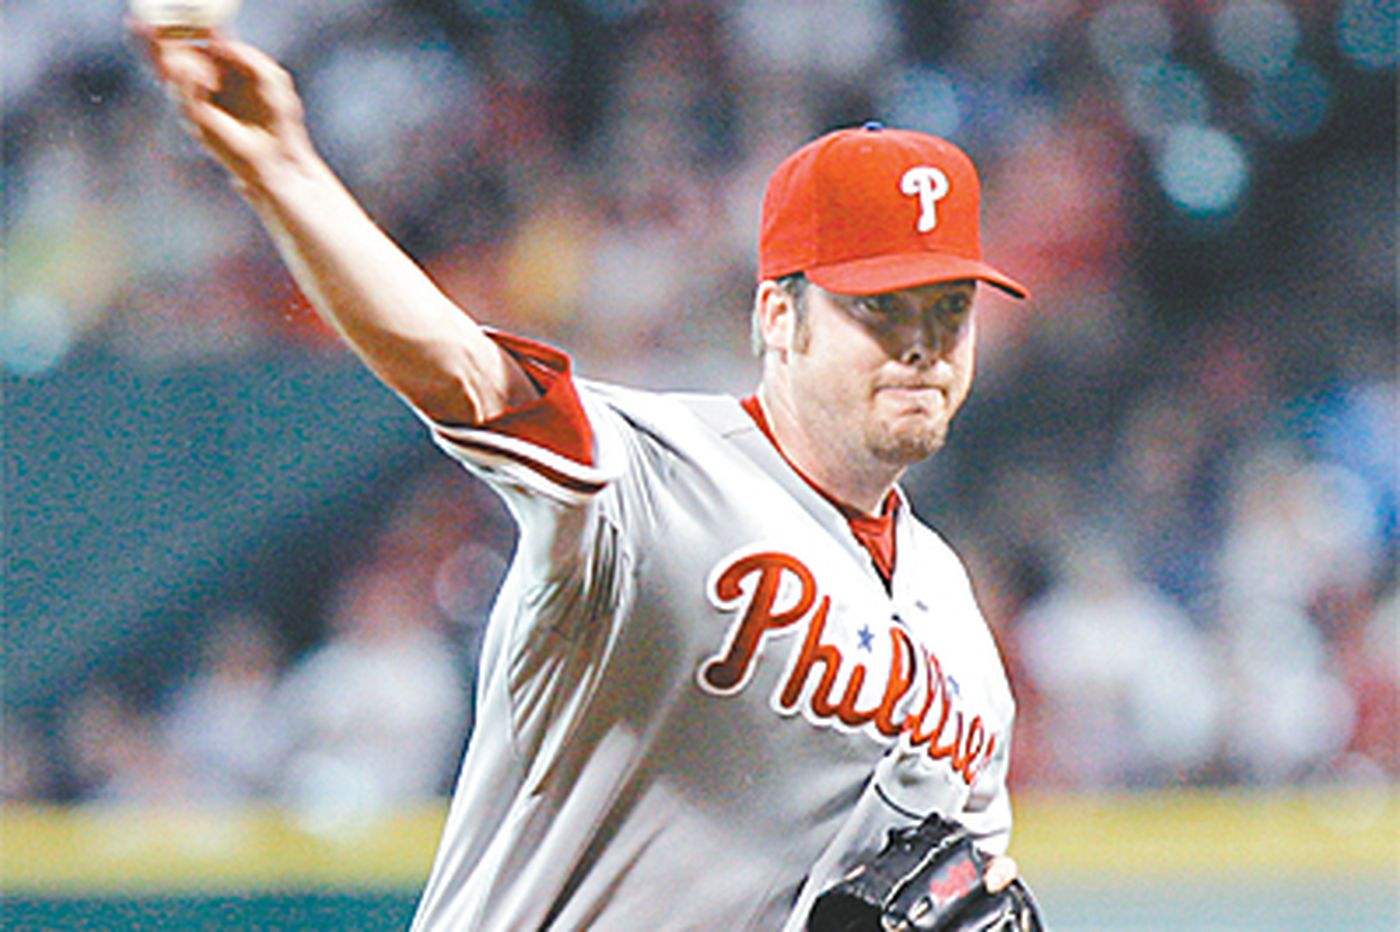 Eaton has strong outing, but Phillies lost to Astros